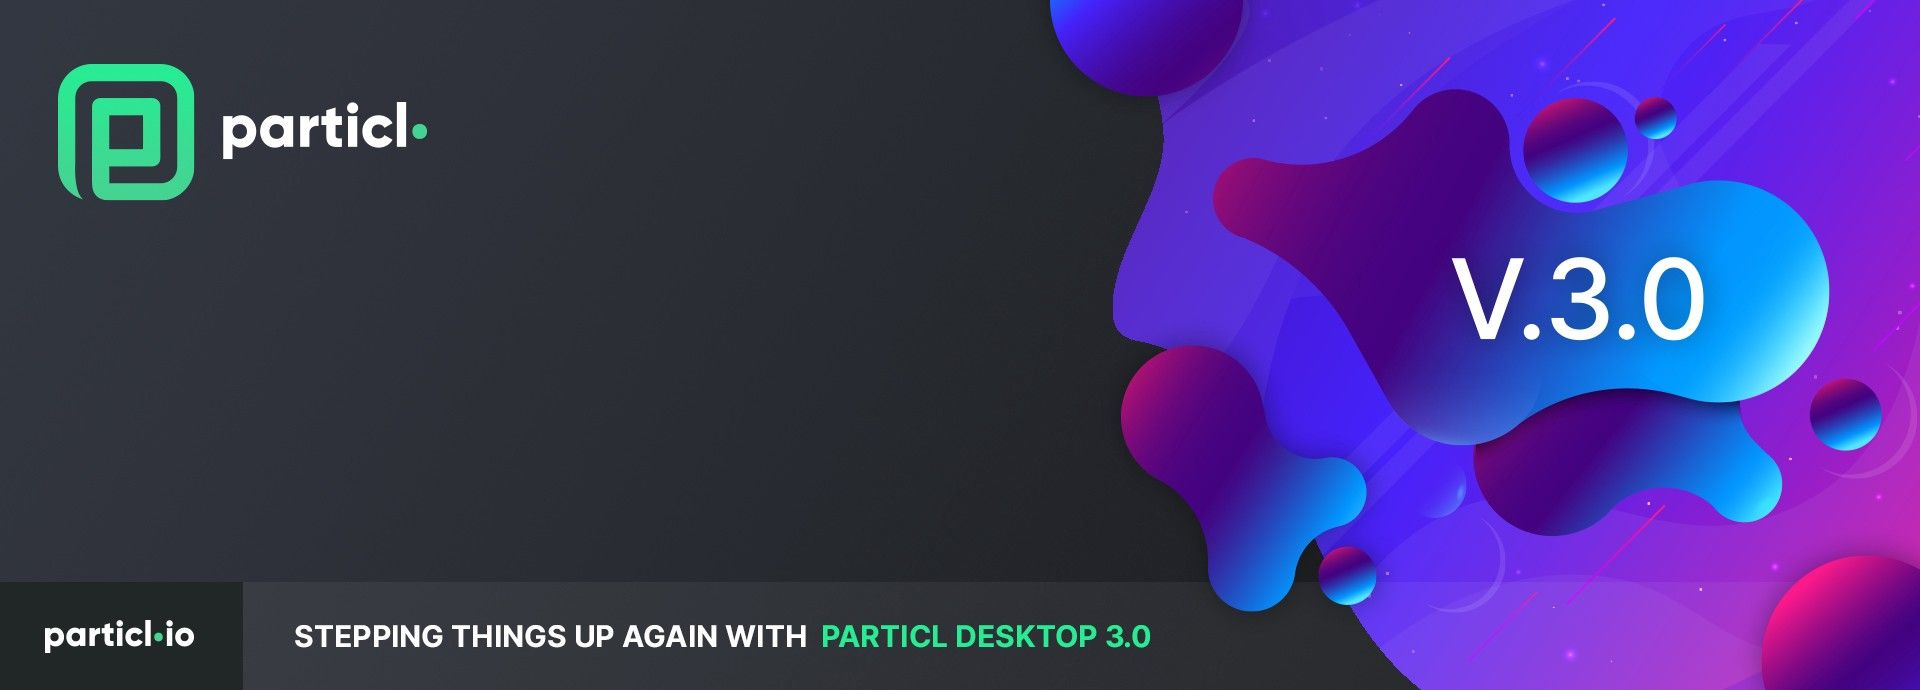 AltCoin Outlook: Stepping Things Up Again With Particl Desktop 3.0